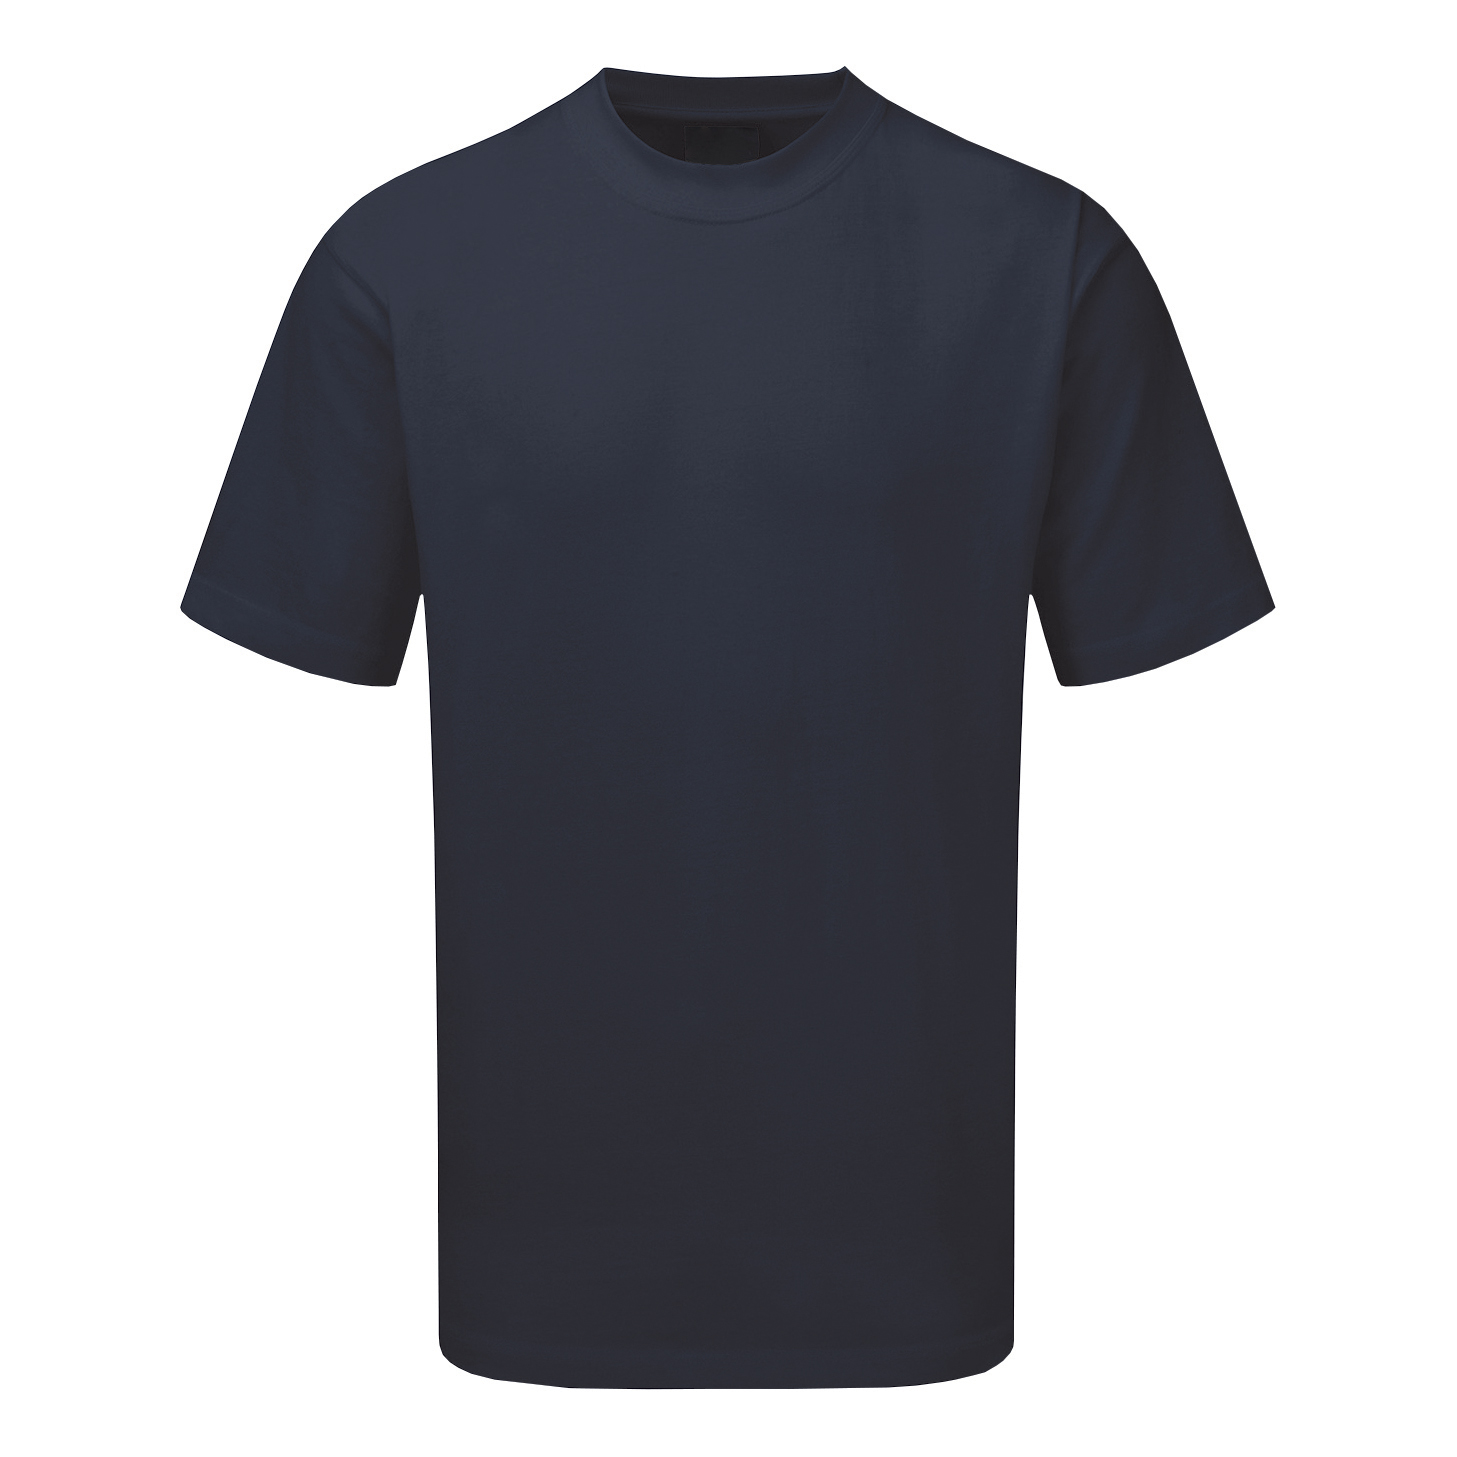 Premium T-Shirt Polycotton Triple Stitched Medium Navy Blue